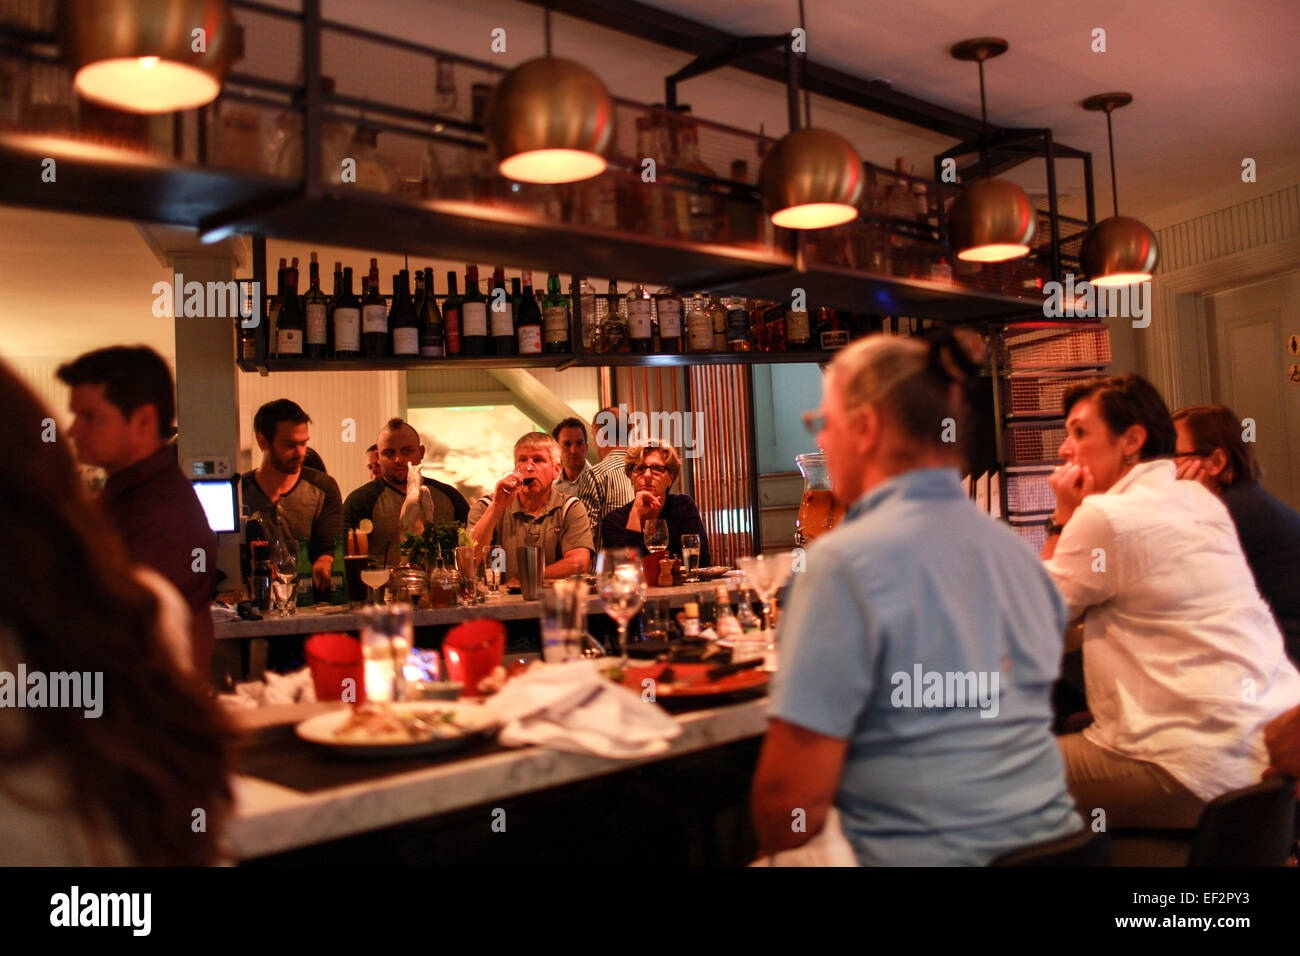 Customers dining at One Twenty One Restaurant in North Salem, NY. - Stock Image